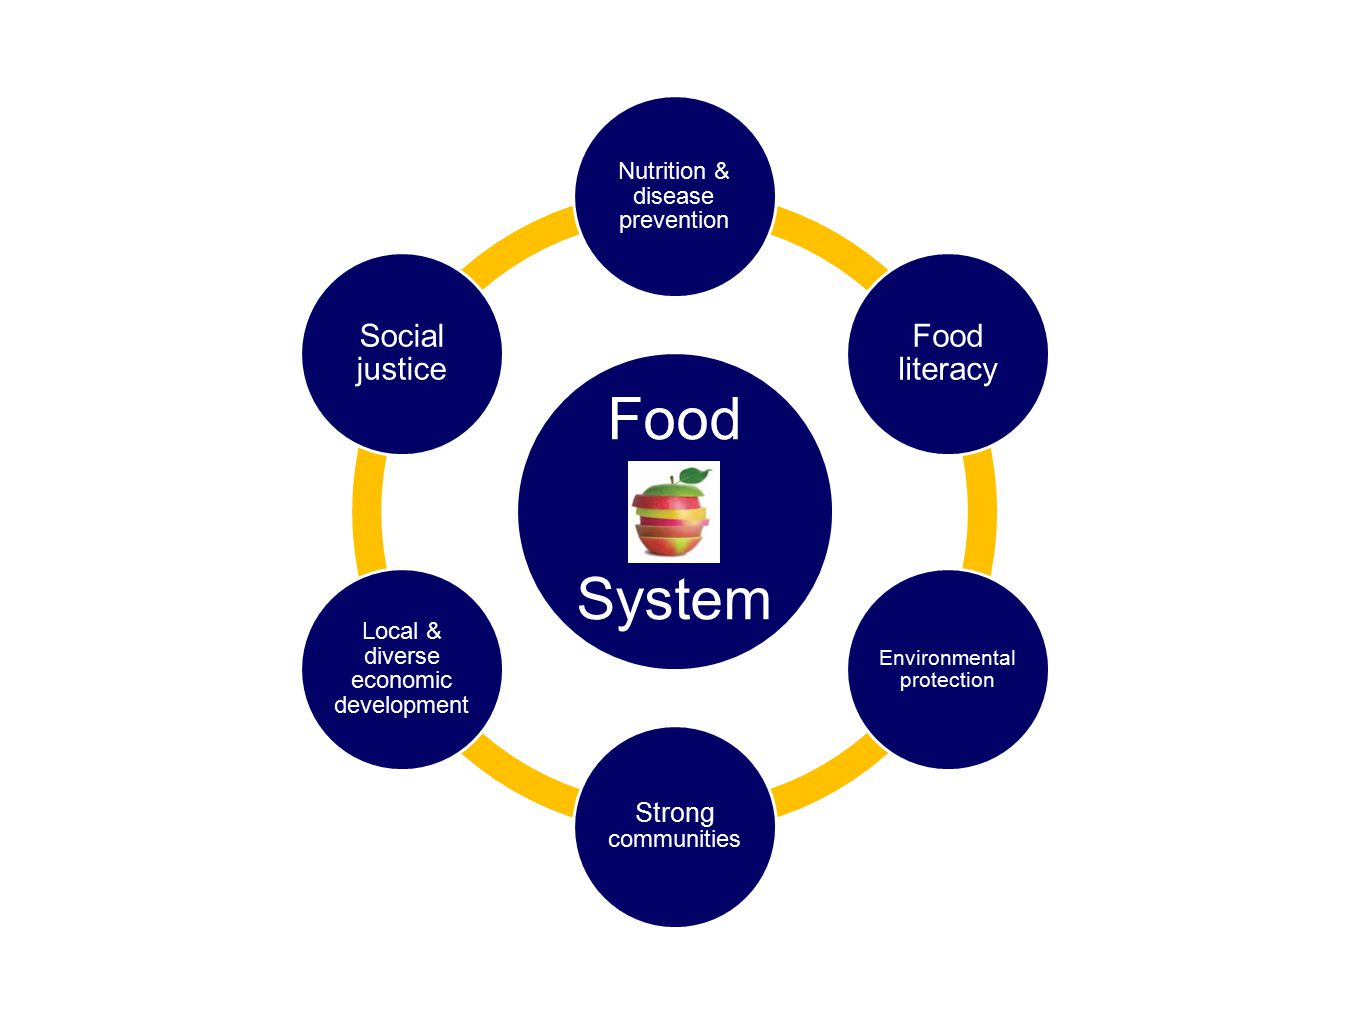 Food System Nutrition & disease prevention Food literacy Environmental protection Strong communities Local & diverse economic development Social justice